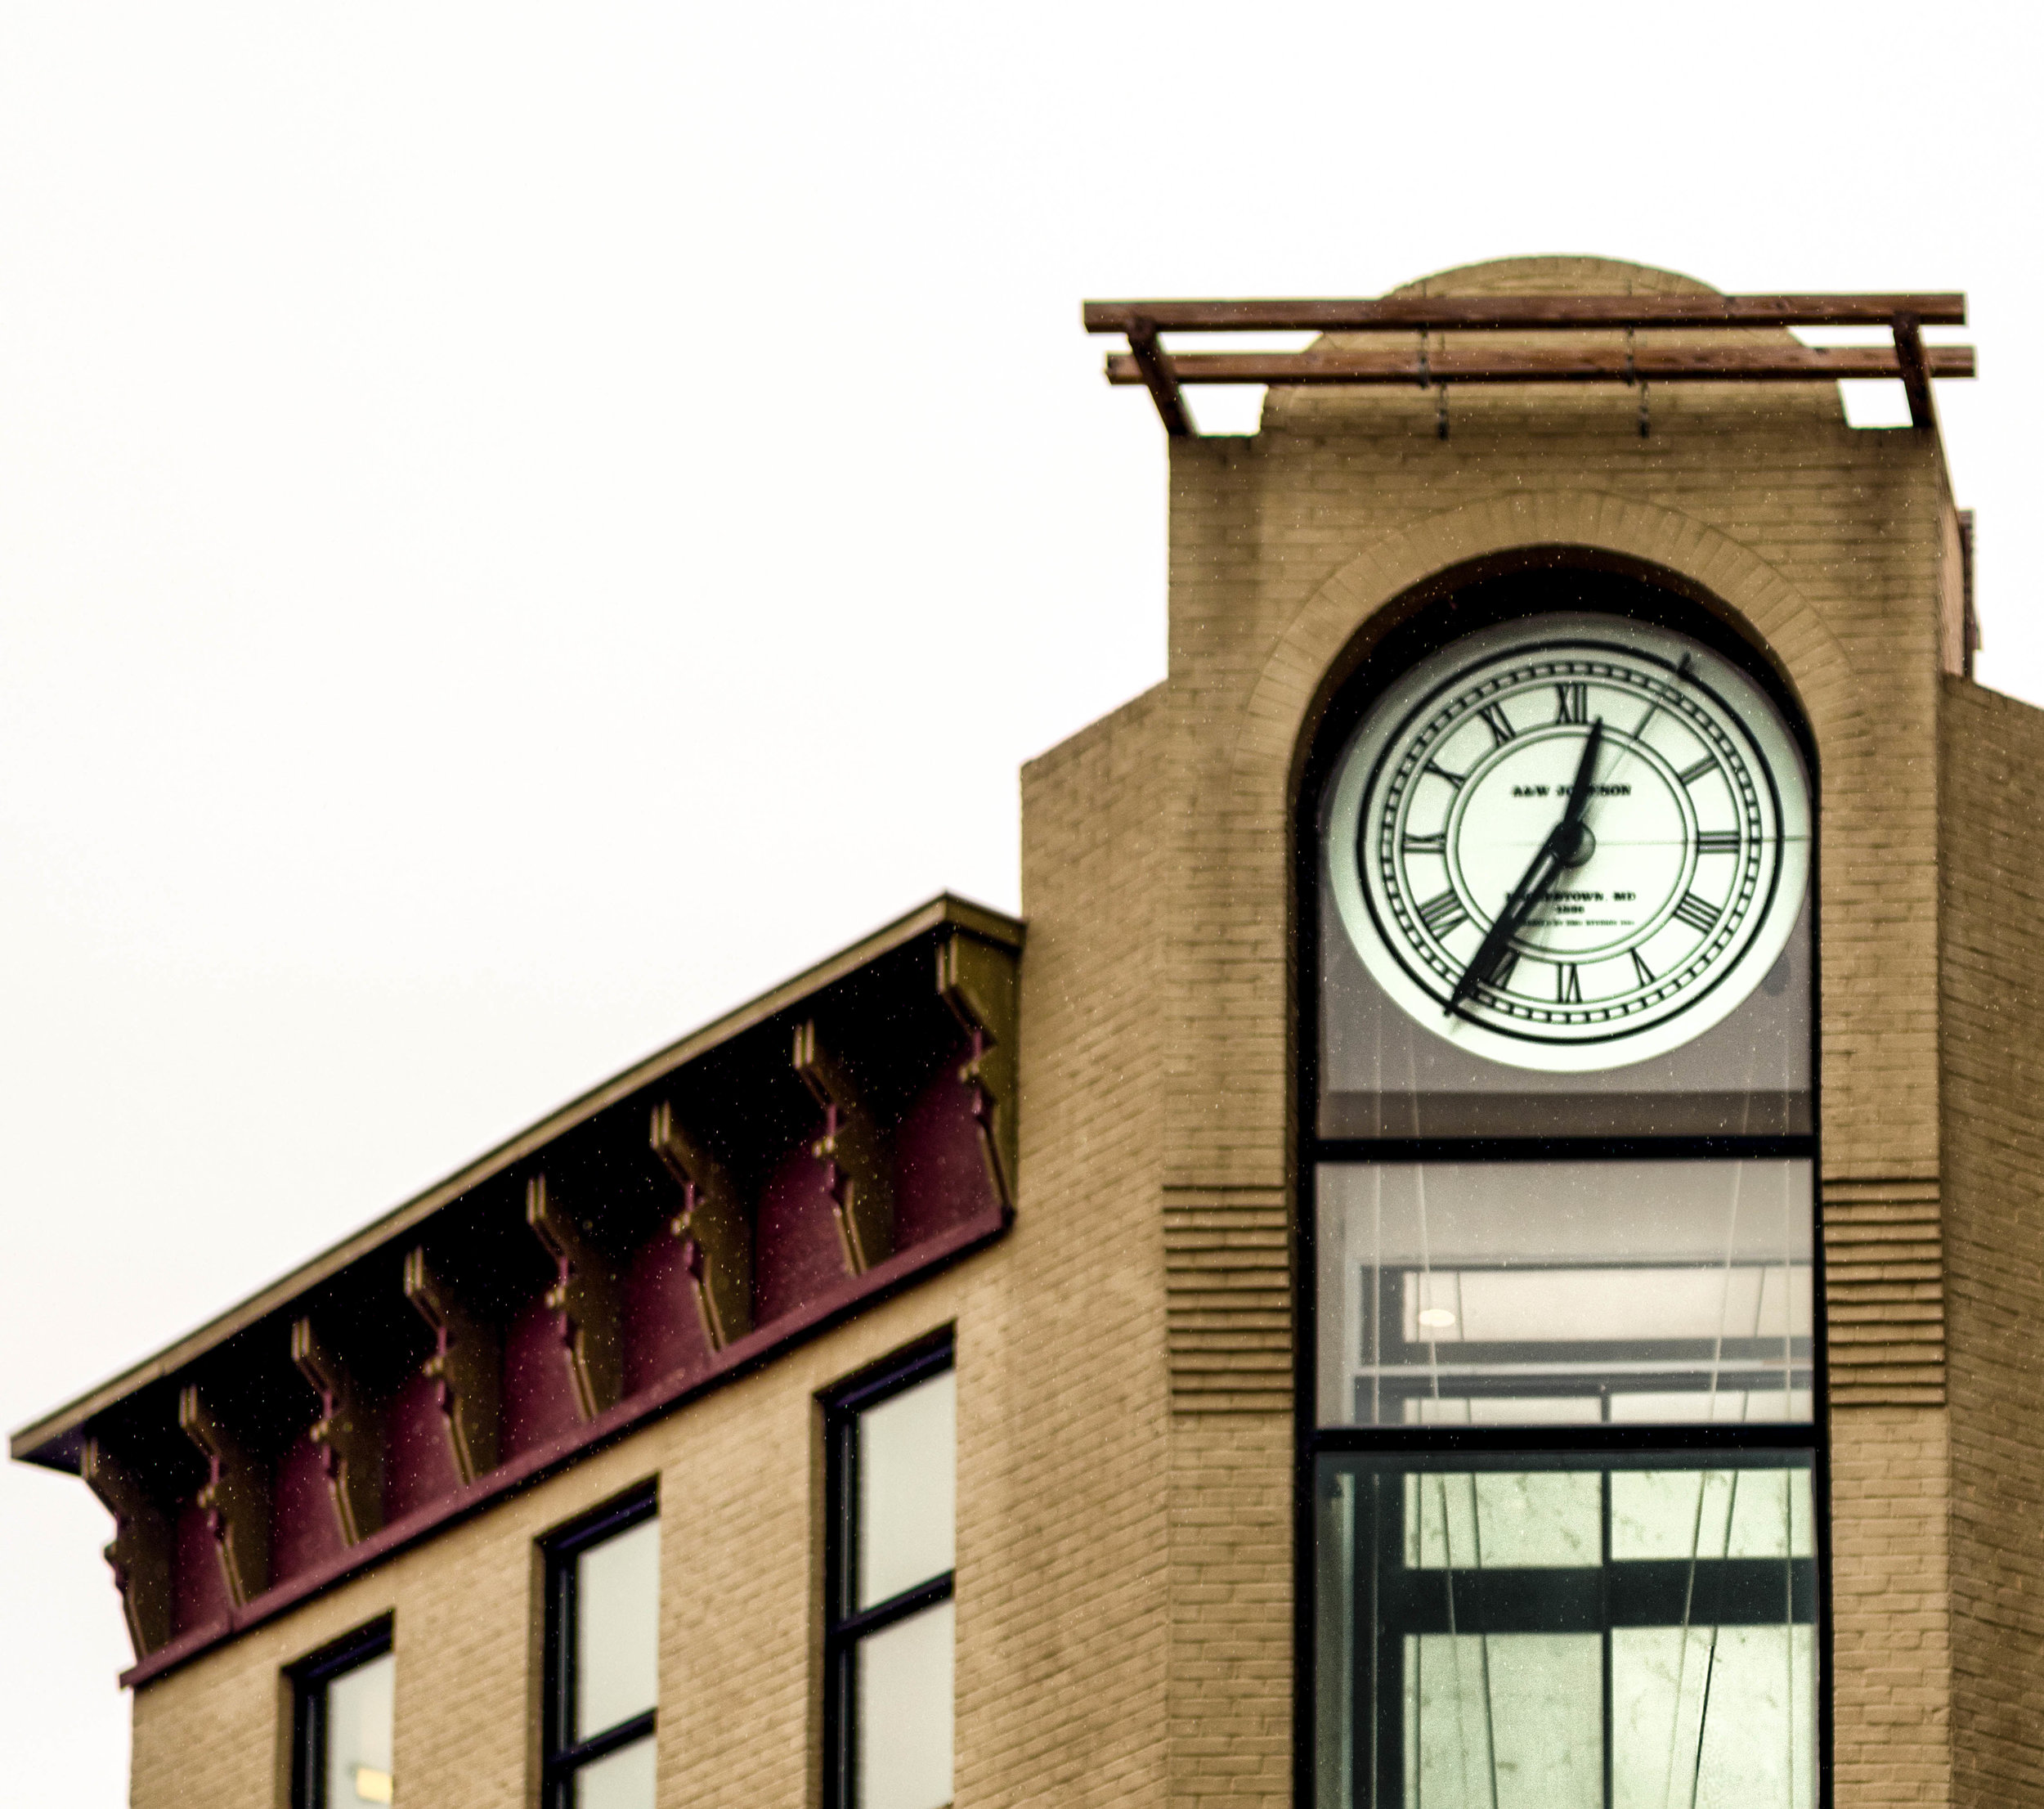 What we see of a clock is its face. Like a clock, what happens behind the scenes are sycronized processes and mechanisms, that are timed and balanced for proper functioning (keeping time) on the clockface. Public square Clocktower, refurbished by HighRock Group, original clock by A&W Johnston c. 1836